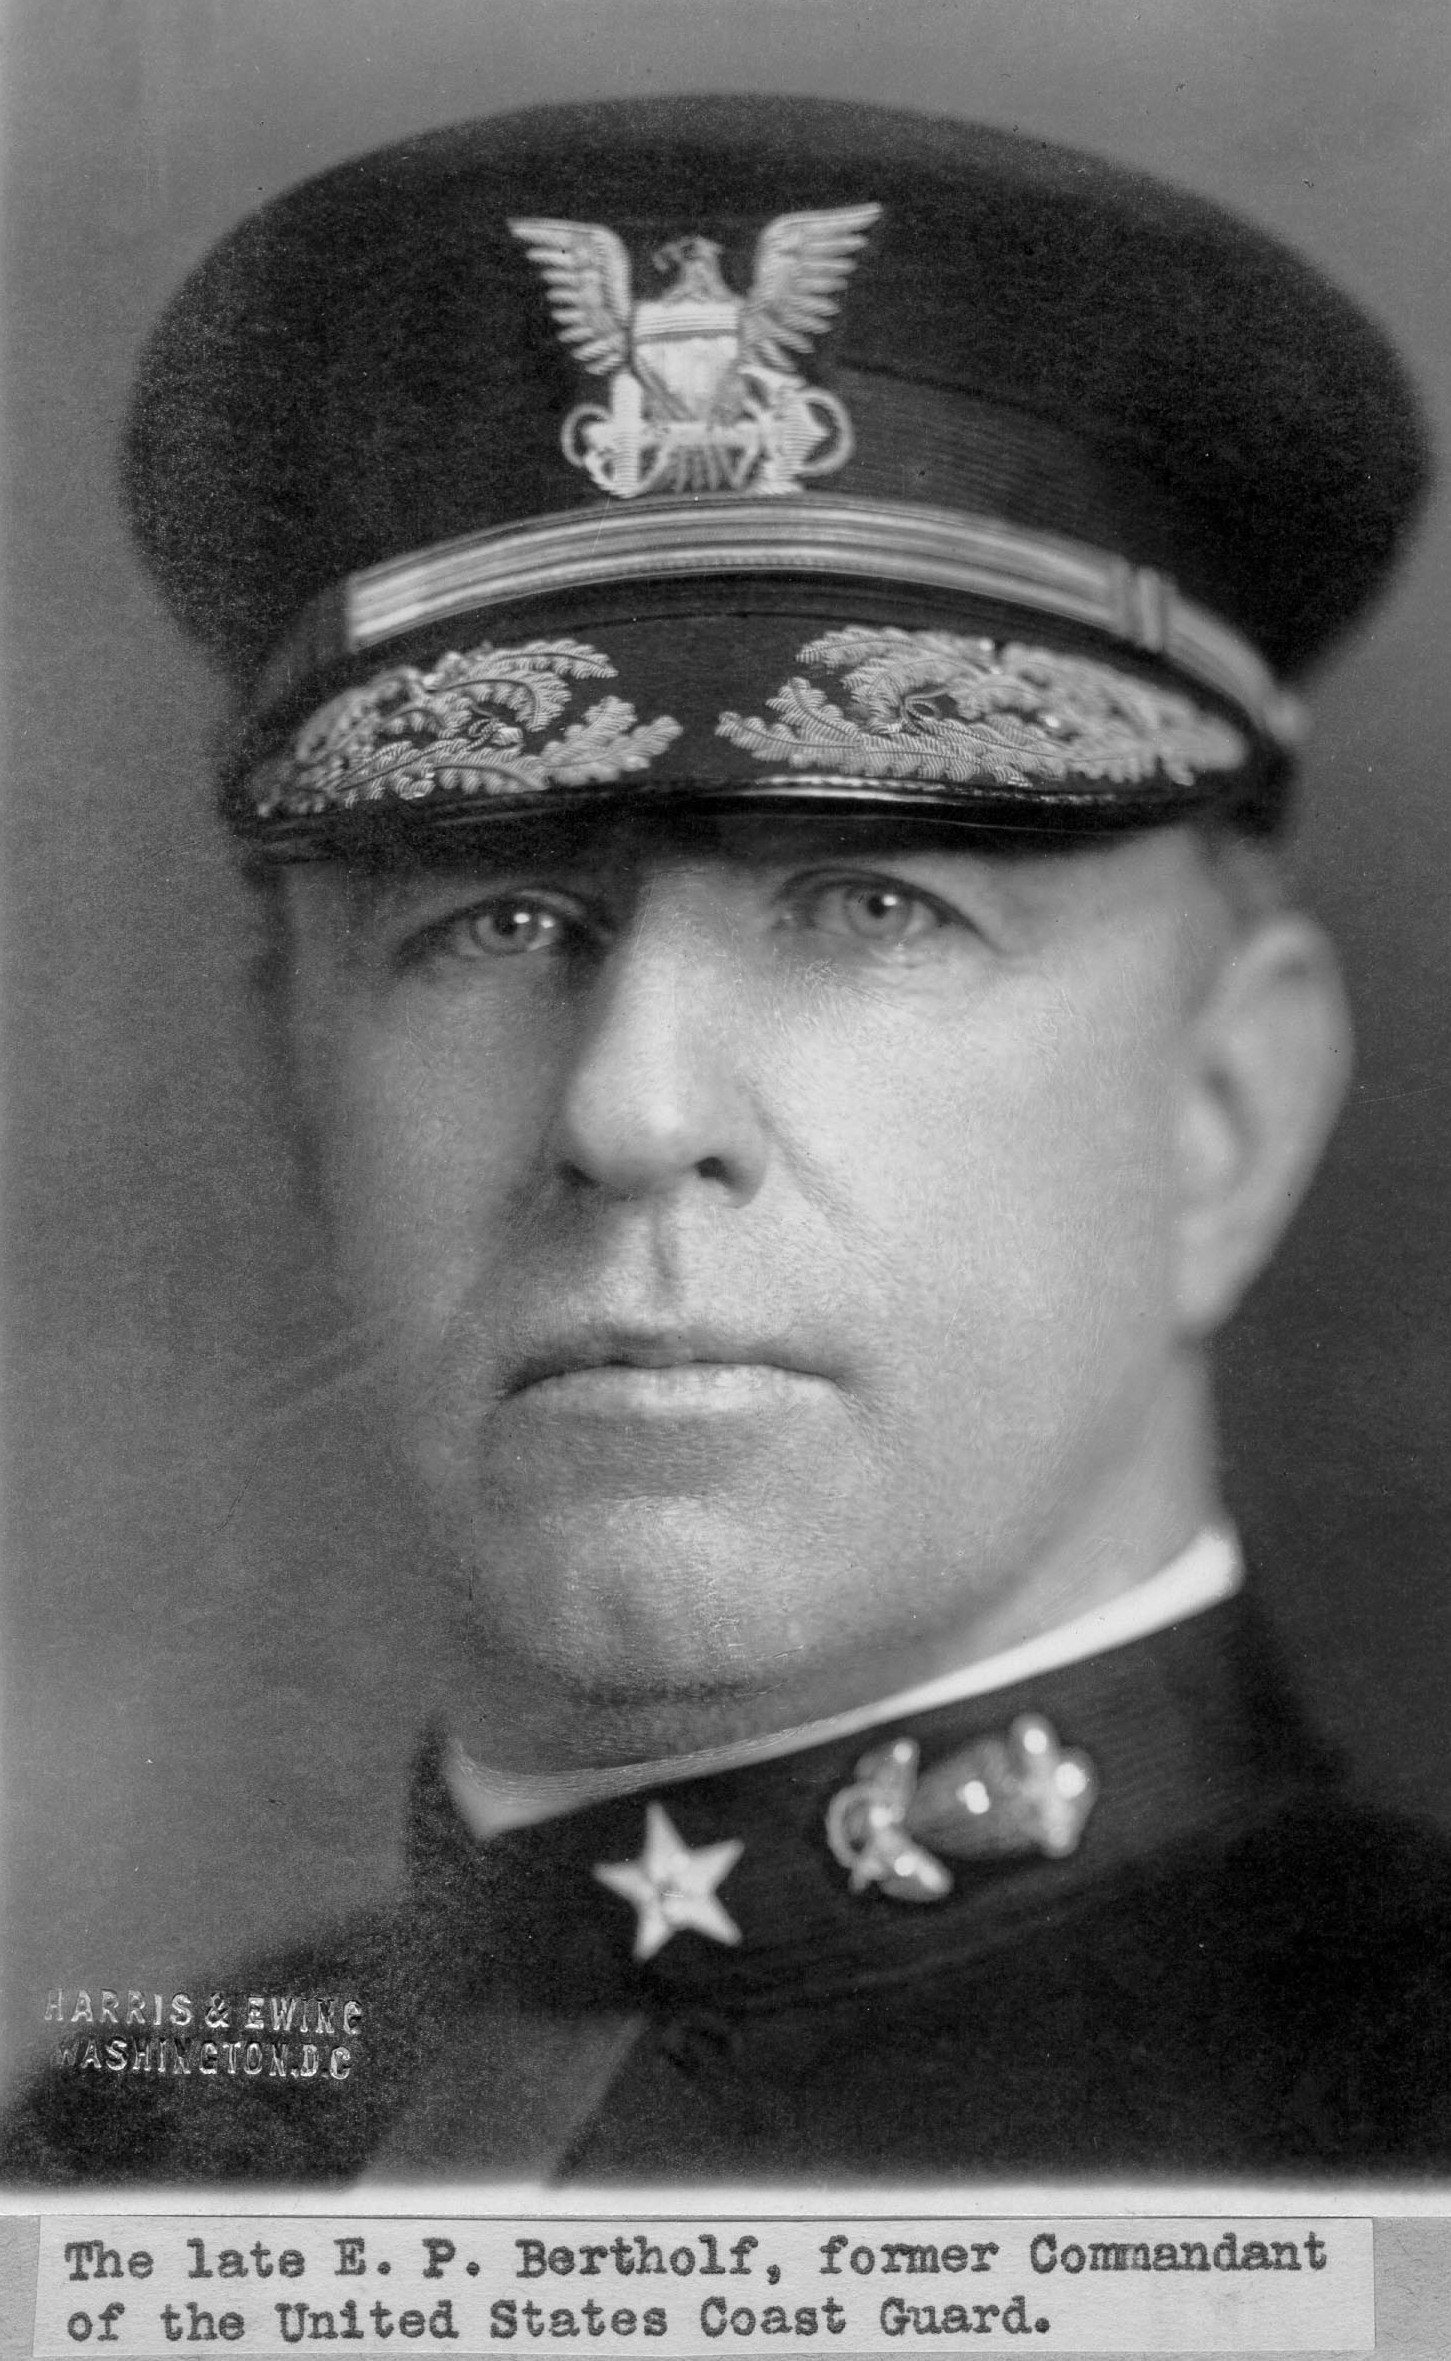 """""""The late [Commodore] E. P. Bertholf, former Commandant of the United States Coast Guard.""""; no date/photo number; photo by """"Harris & Ewing, Washington, D.C."""""""